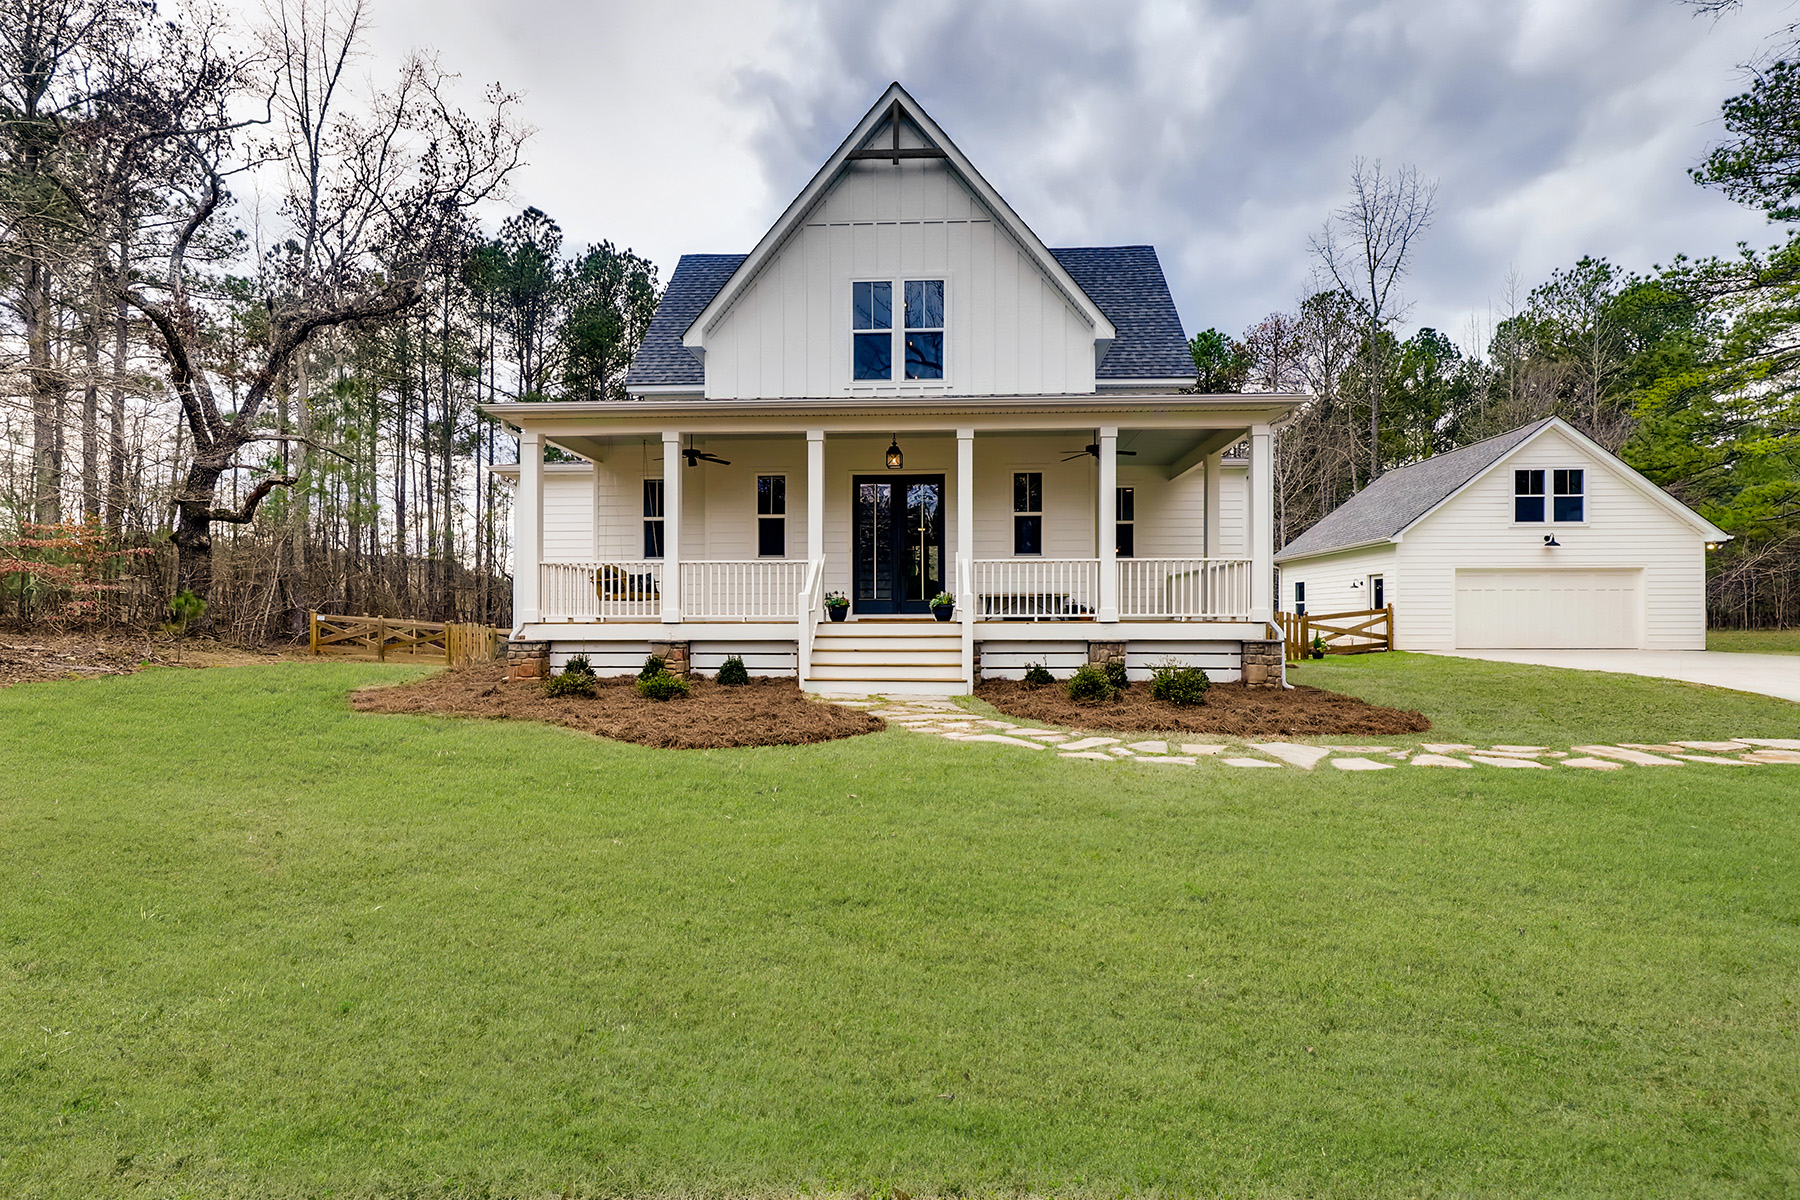 Single Family Homes for Sale at Enchanting Transitional Farmhouse On 5+/- Acres Near Serenbe Built In 2018 1632 Happy Valley Circle Newnan, Georgia 30263 United States